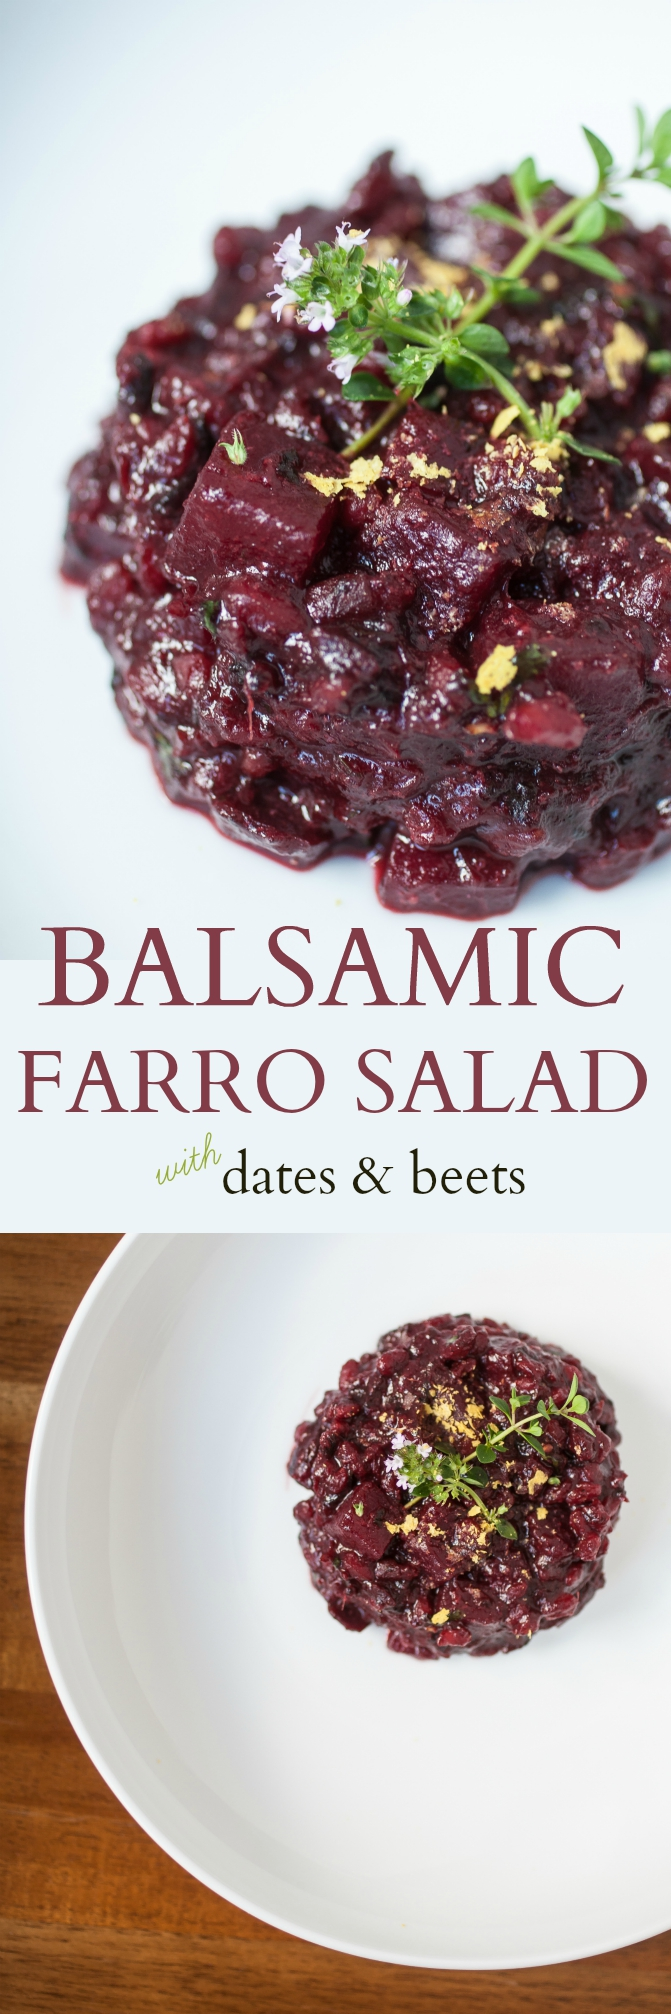 Produce On Parade - The Broad Fork Cookbook review and a recipe for Balsamic Farro Salad w/ Dates & Beets - Sweet and savory with salty notes from the miso, this tangy-balsamic farro salad is studded with tender beets, mashed Medjool dates, and fresh herbs. It's a unique and stunningly delicious flavor profile. A perfect side dish and the tastiest way to use up all those beets! Heavily adapted from The Broad Fork cookbook.